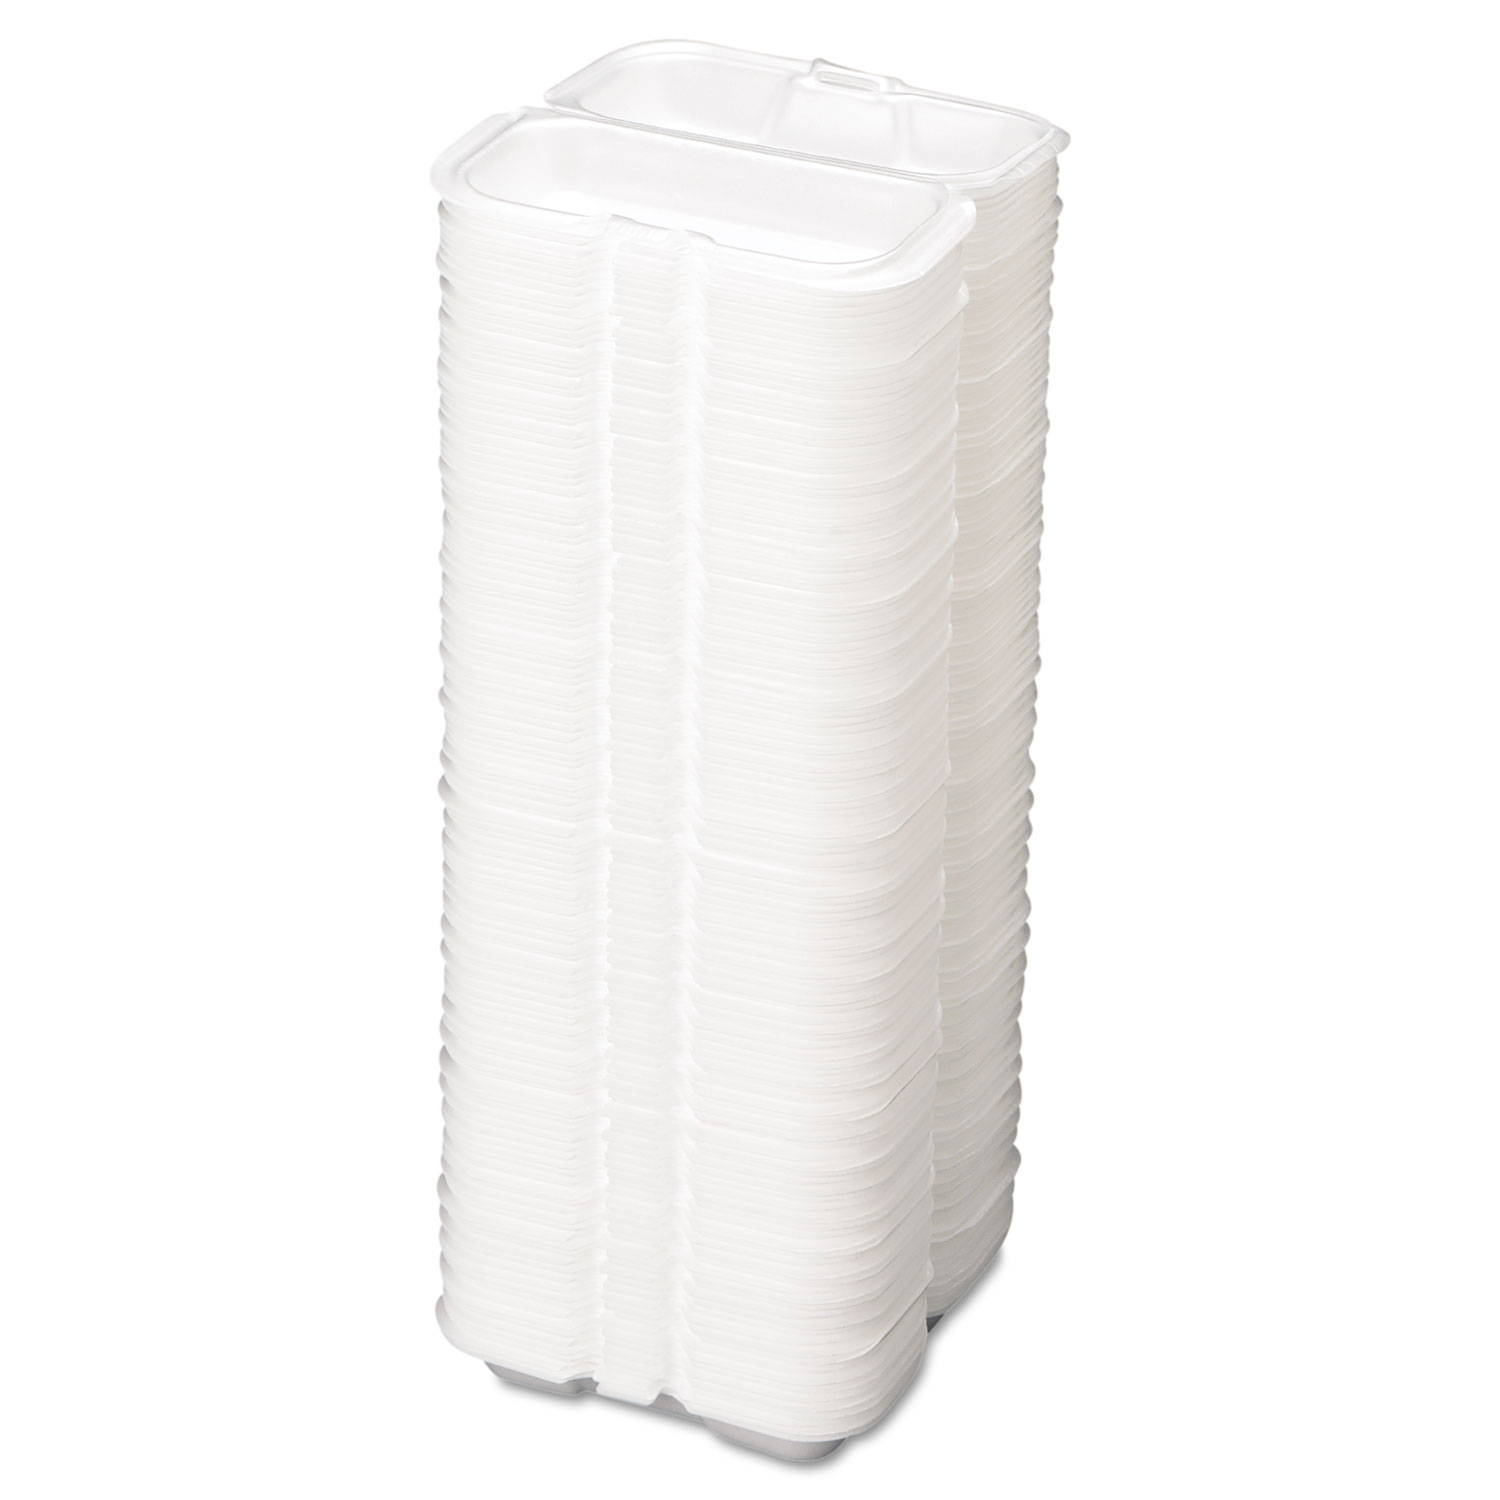 White Foam Hot Dog Container